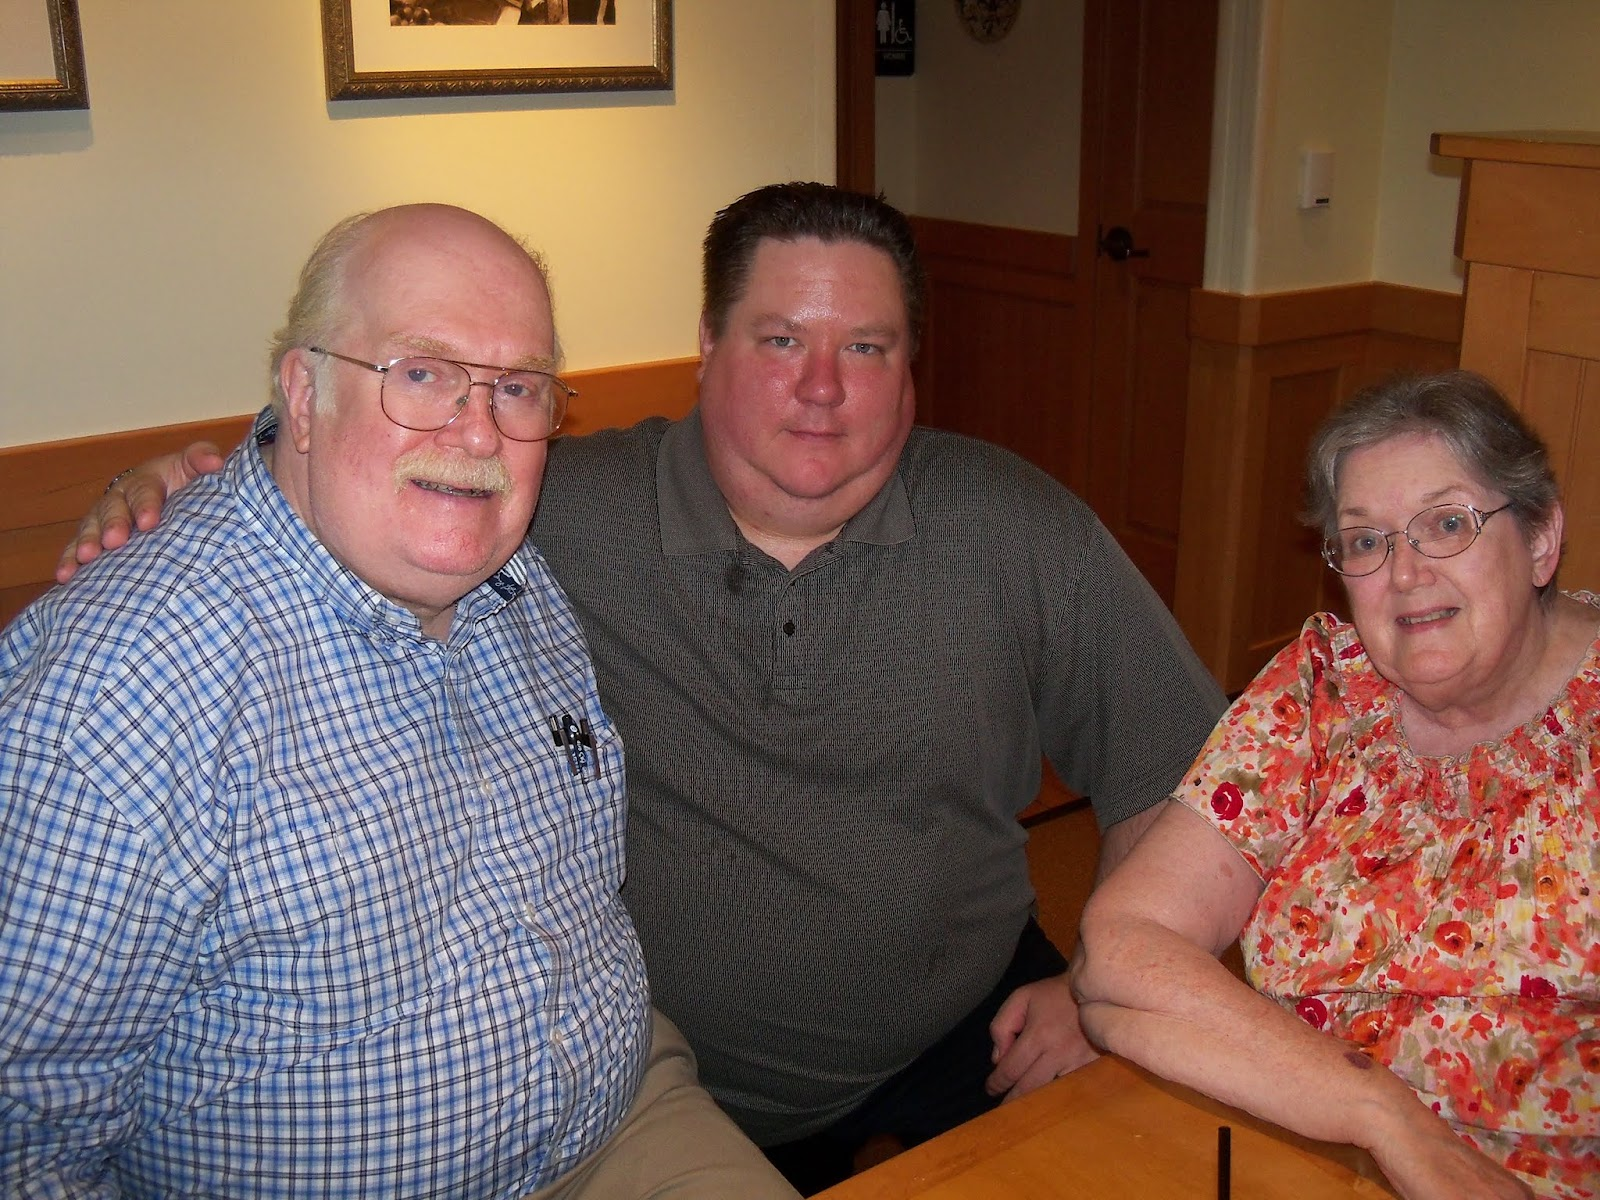 Dads 70th Birthday Party - 116_9524.JPG